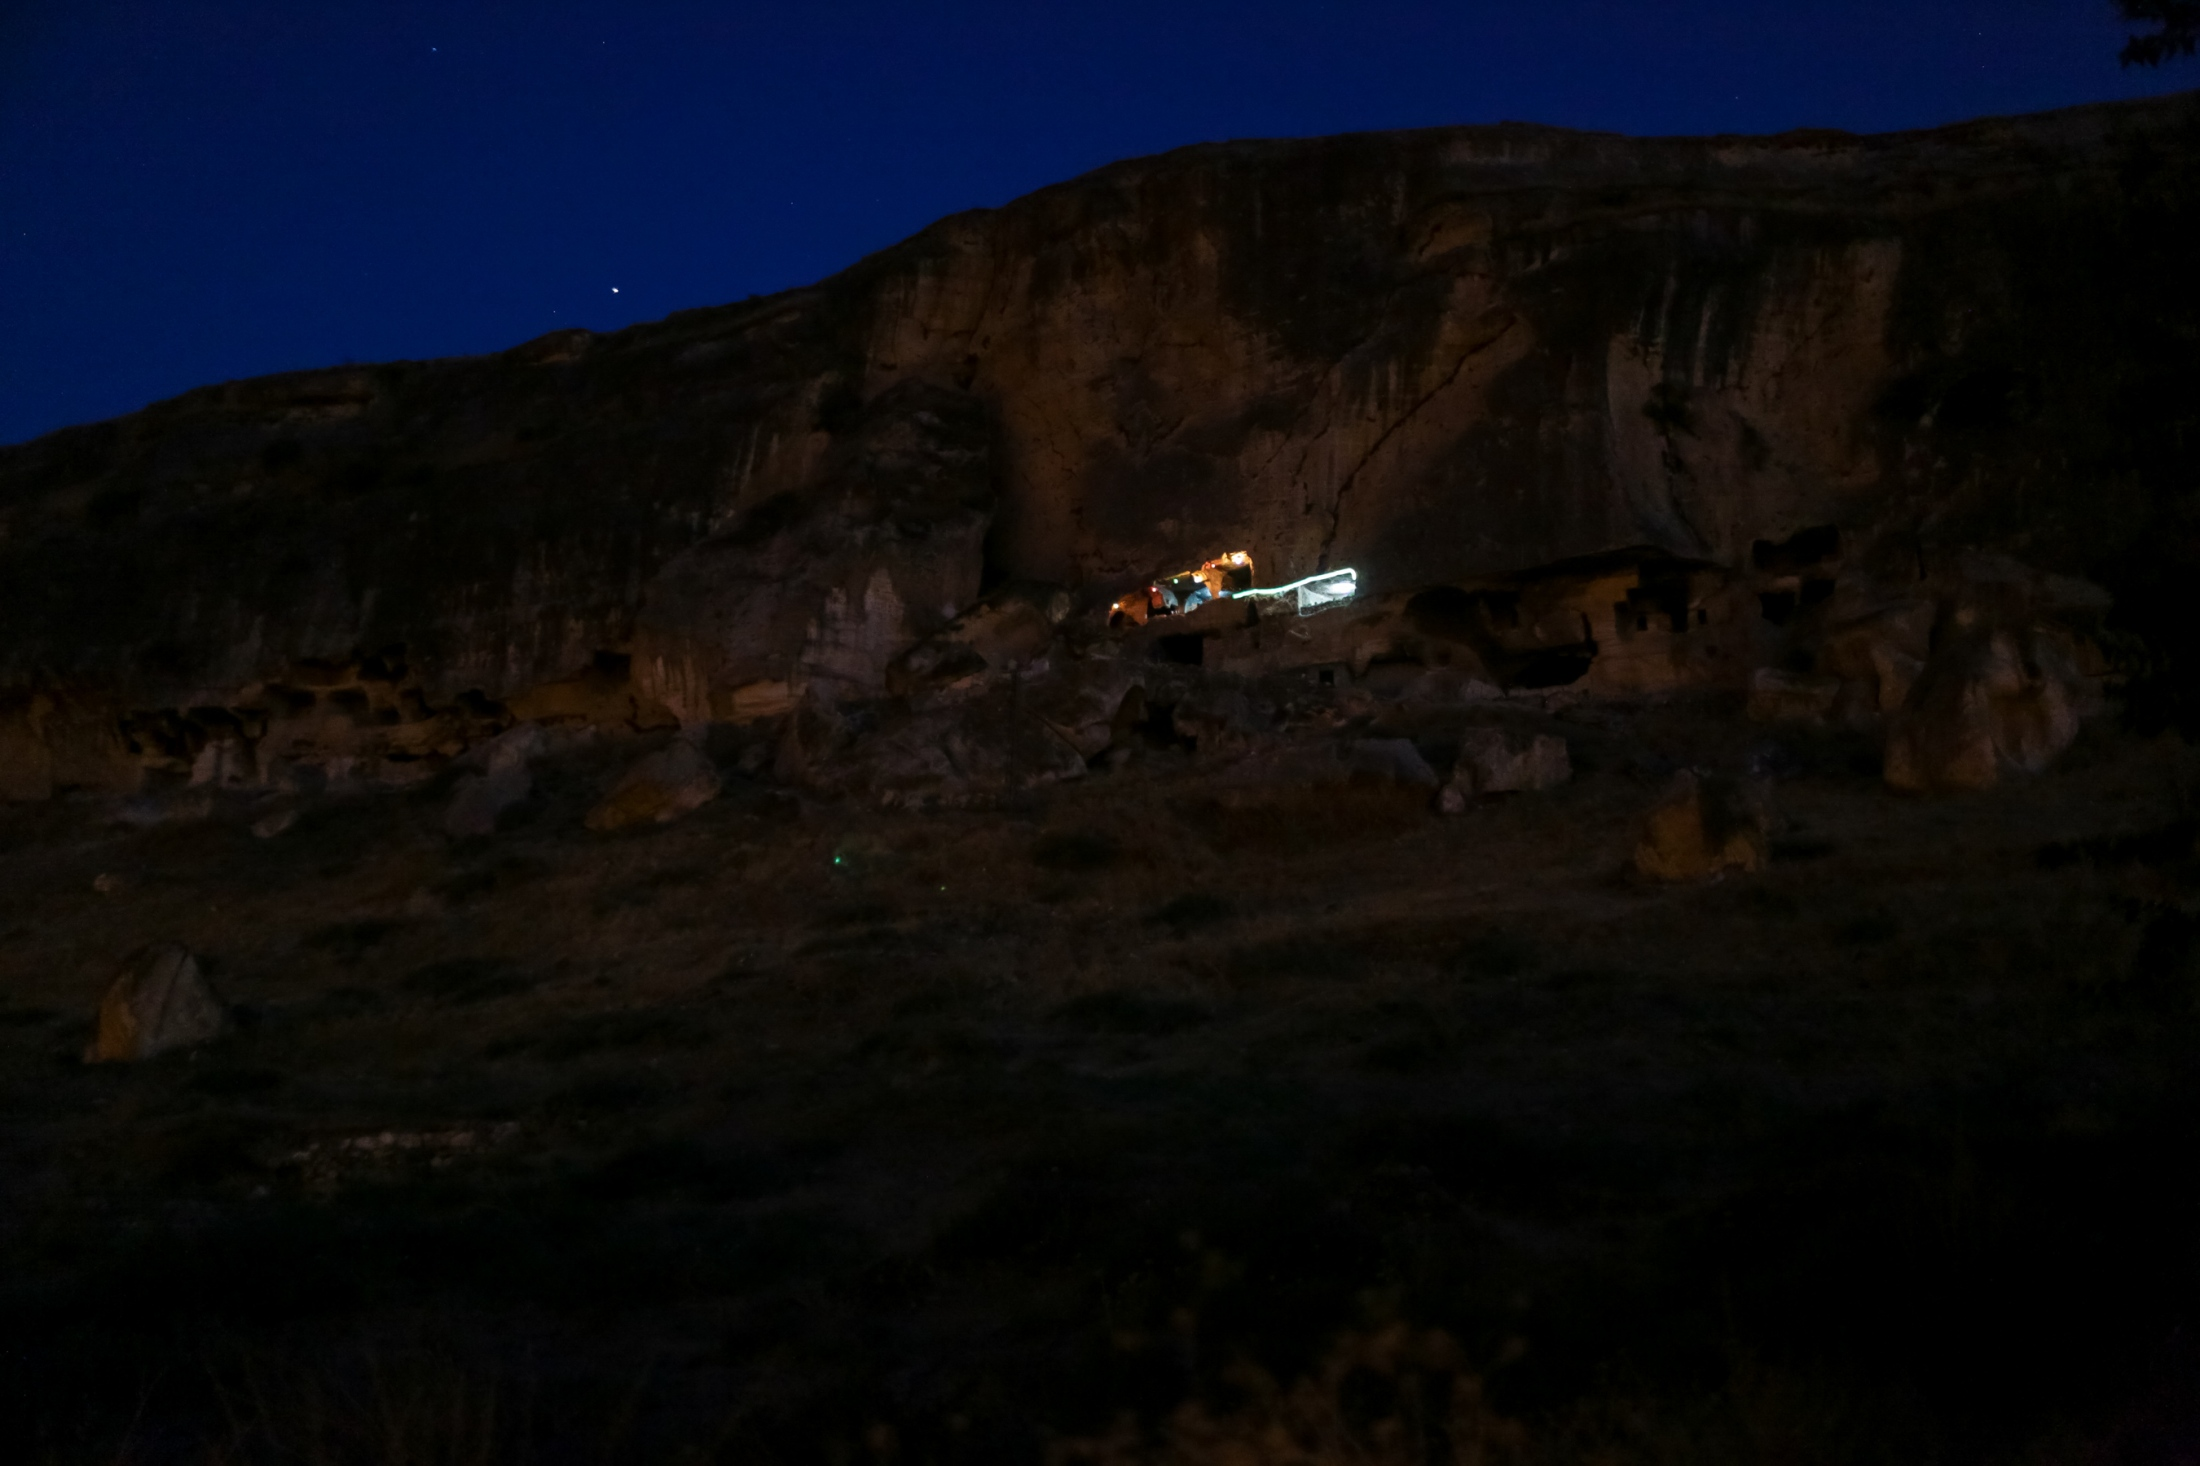 Before moving into Hasankeyf, the residents lived in caves carved into the surrounding mountains. Some 100 years ago, the residents moved into homes in Hasankeyf. A very few residents still live in these caves.